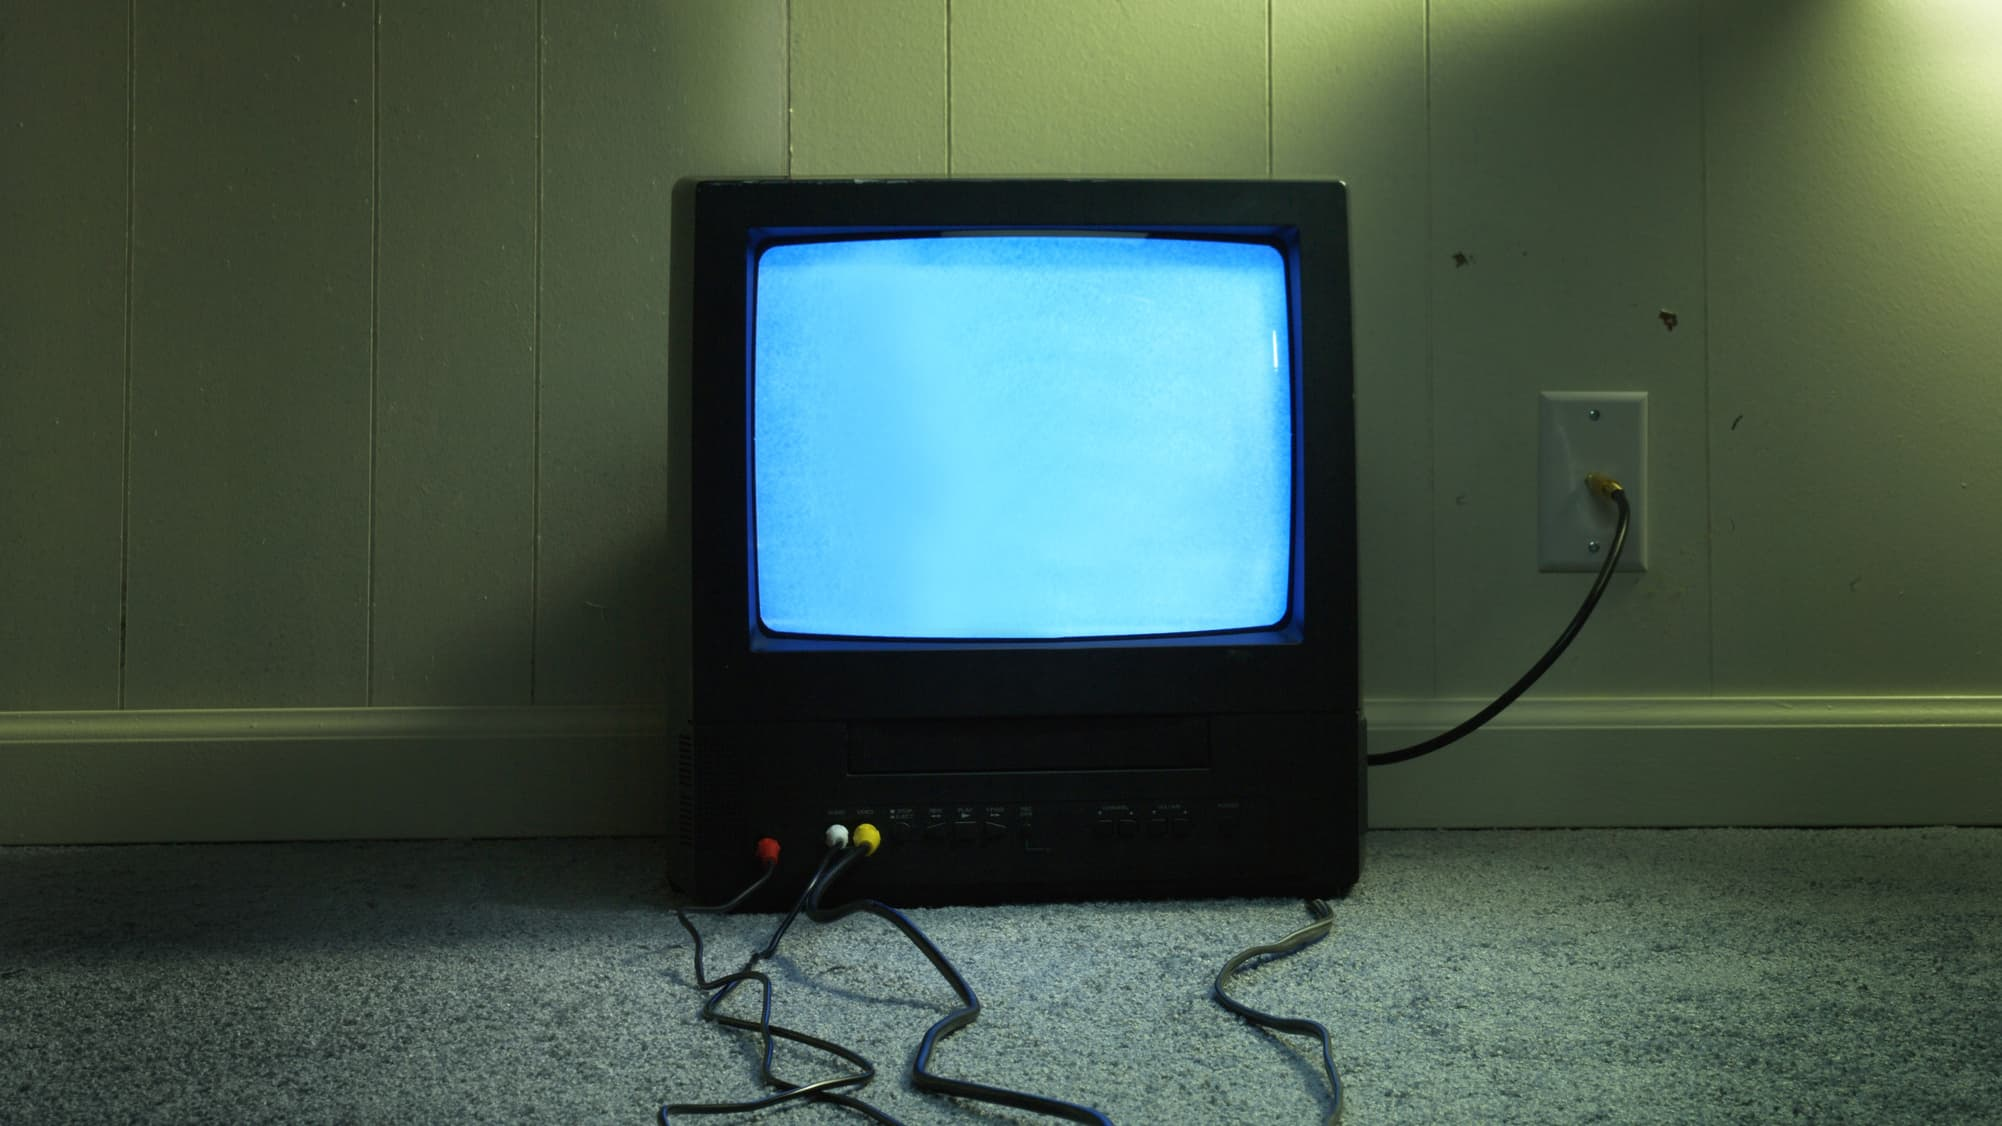 medium resolution of the future of cable may be no tv at all as one small company from arizona shows